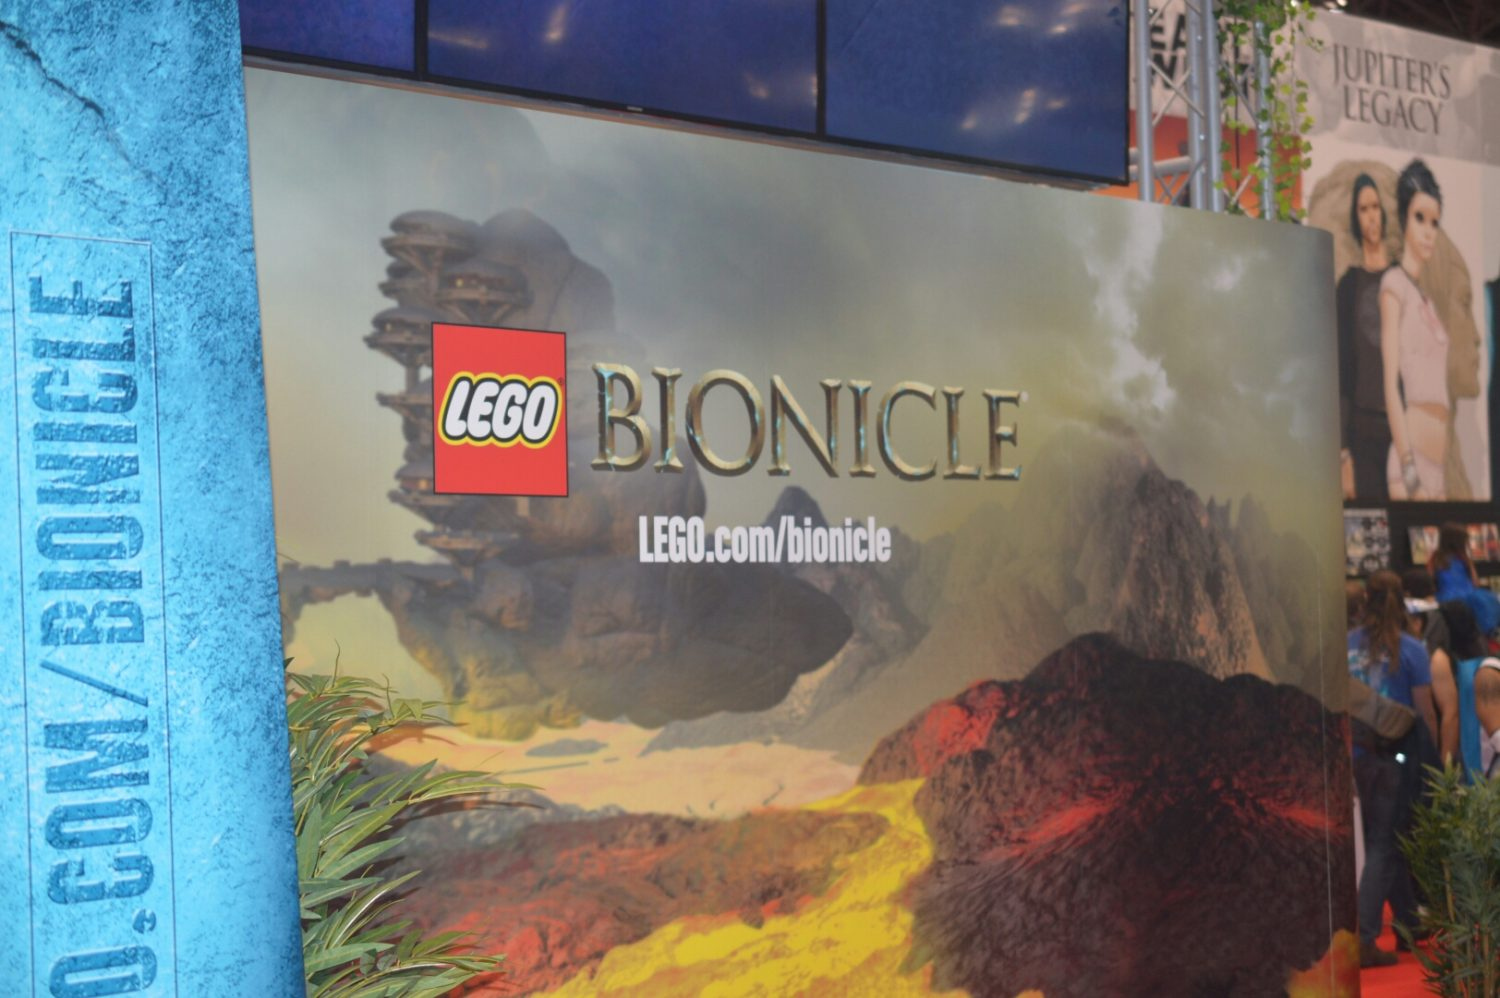 NYCC 2014 – LEGO Bionicle Display